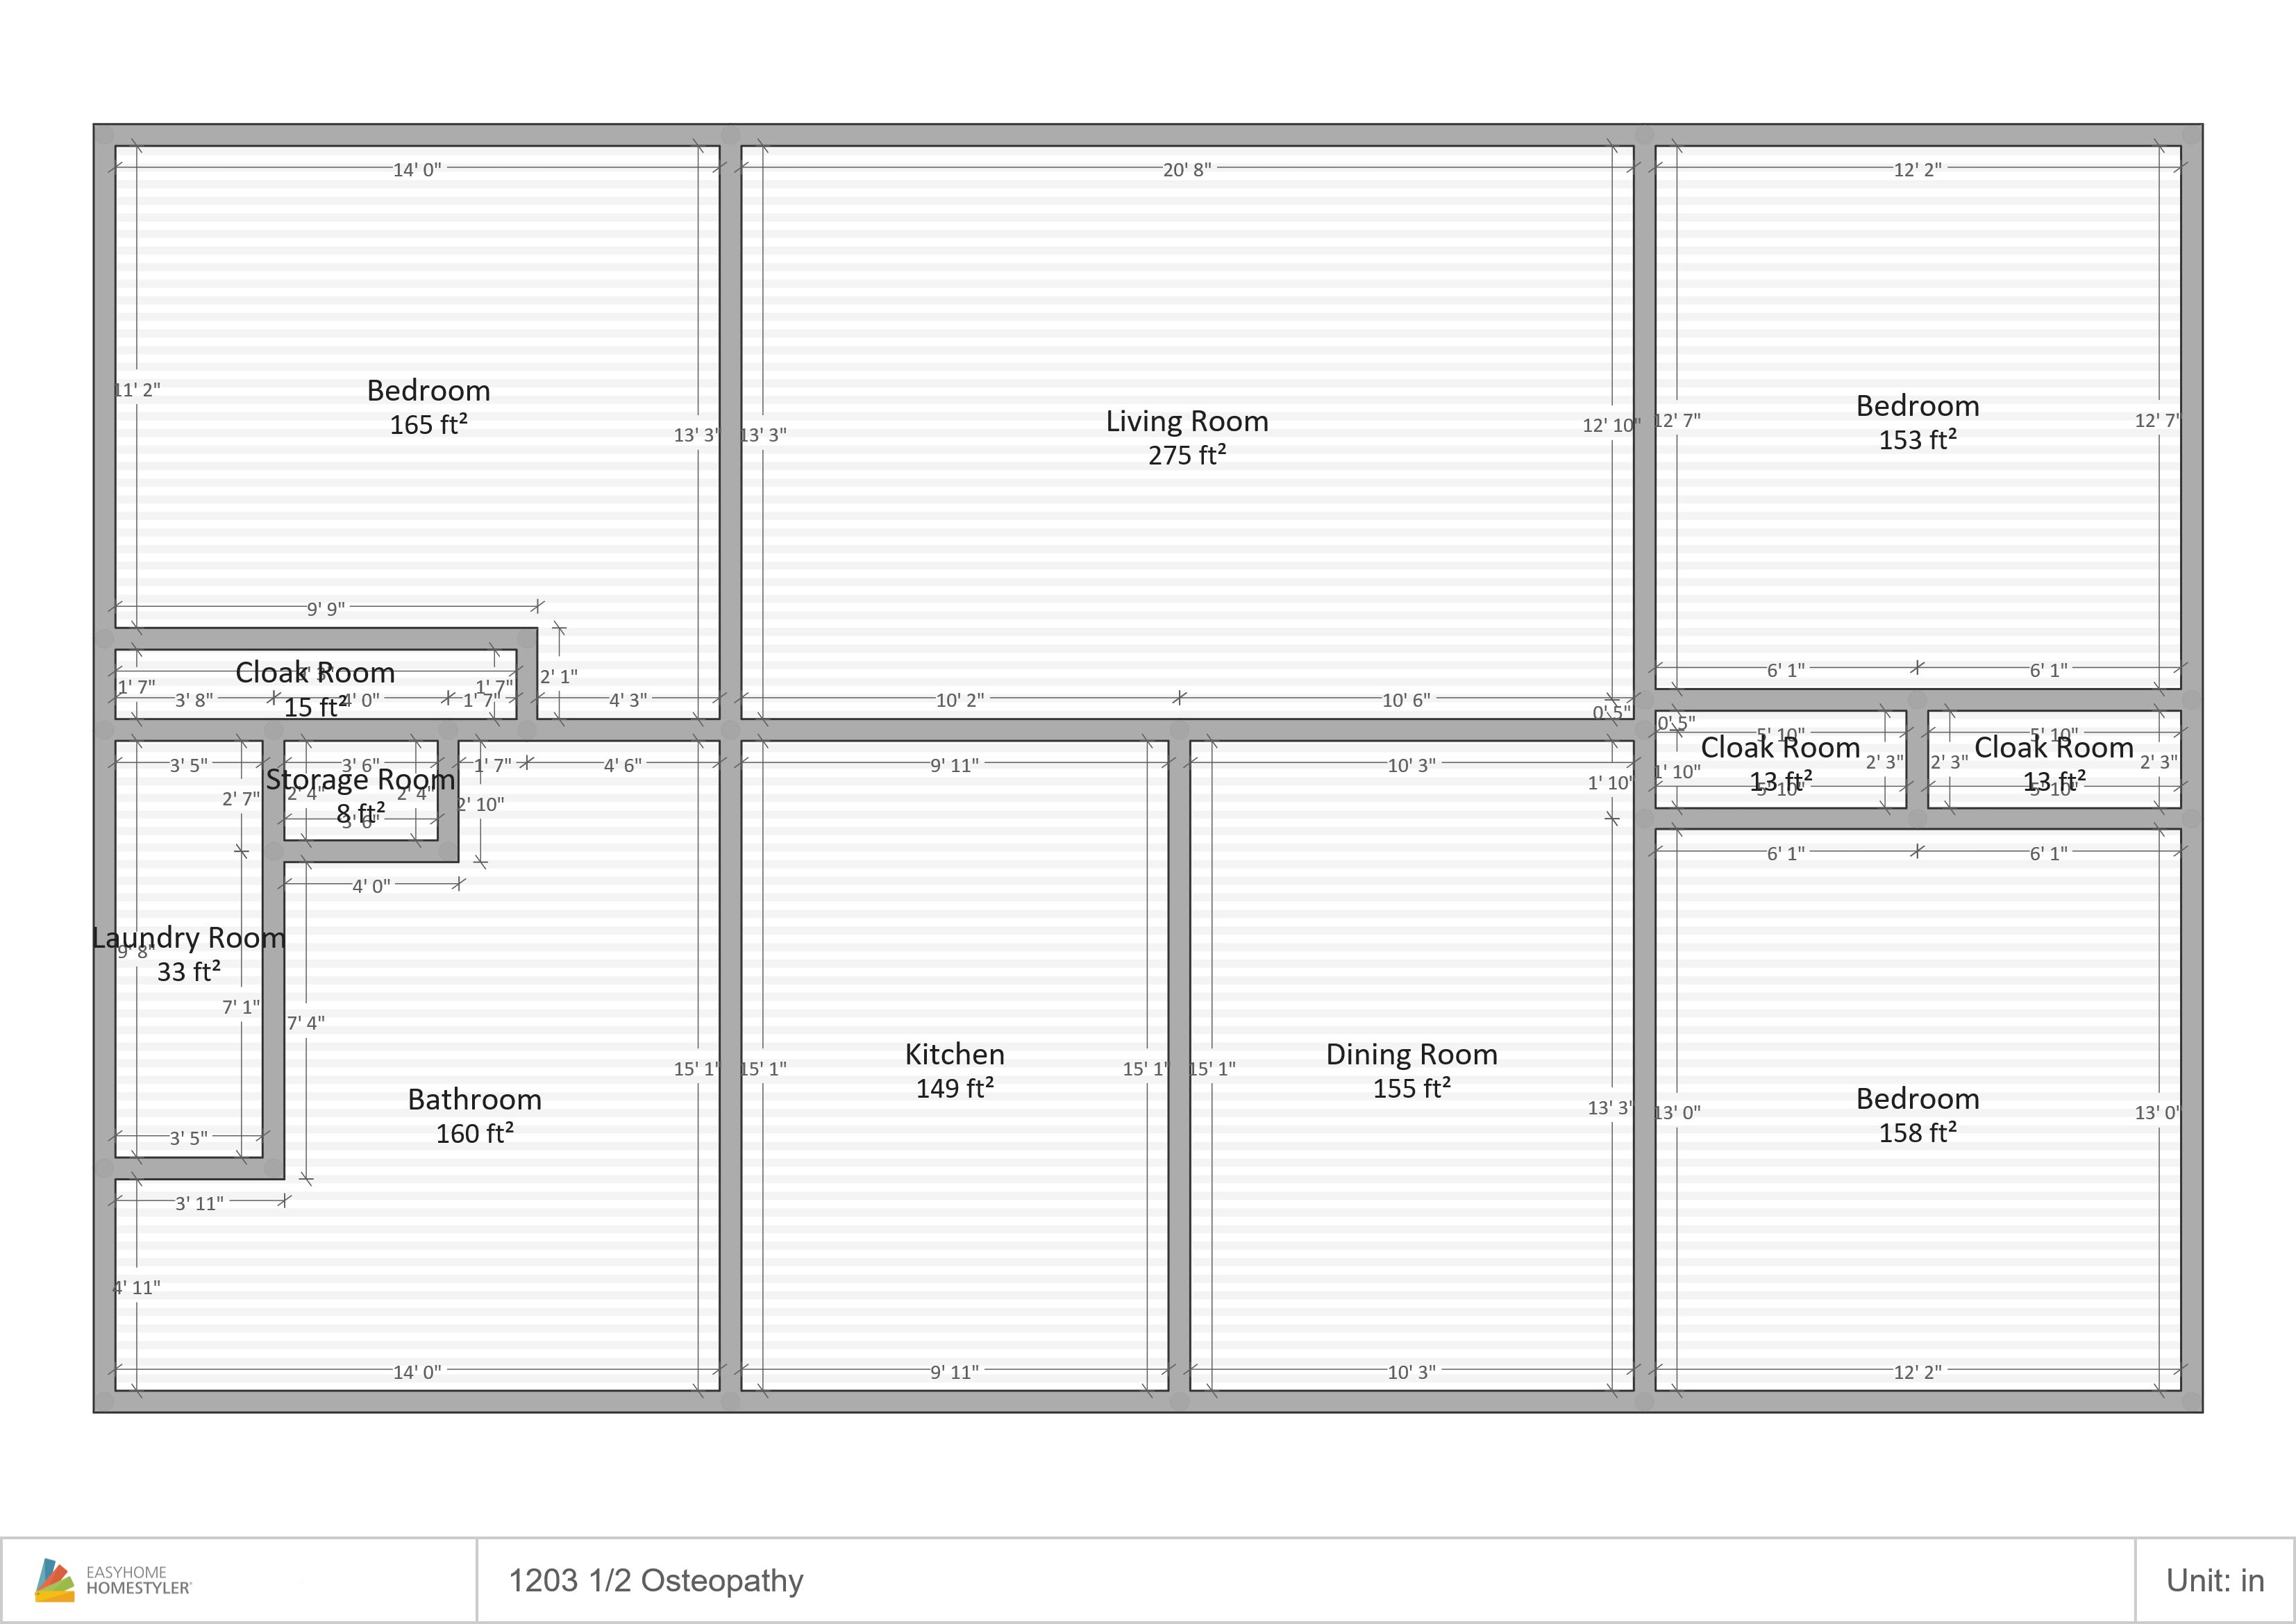 1203.5Ostfloorplan